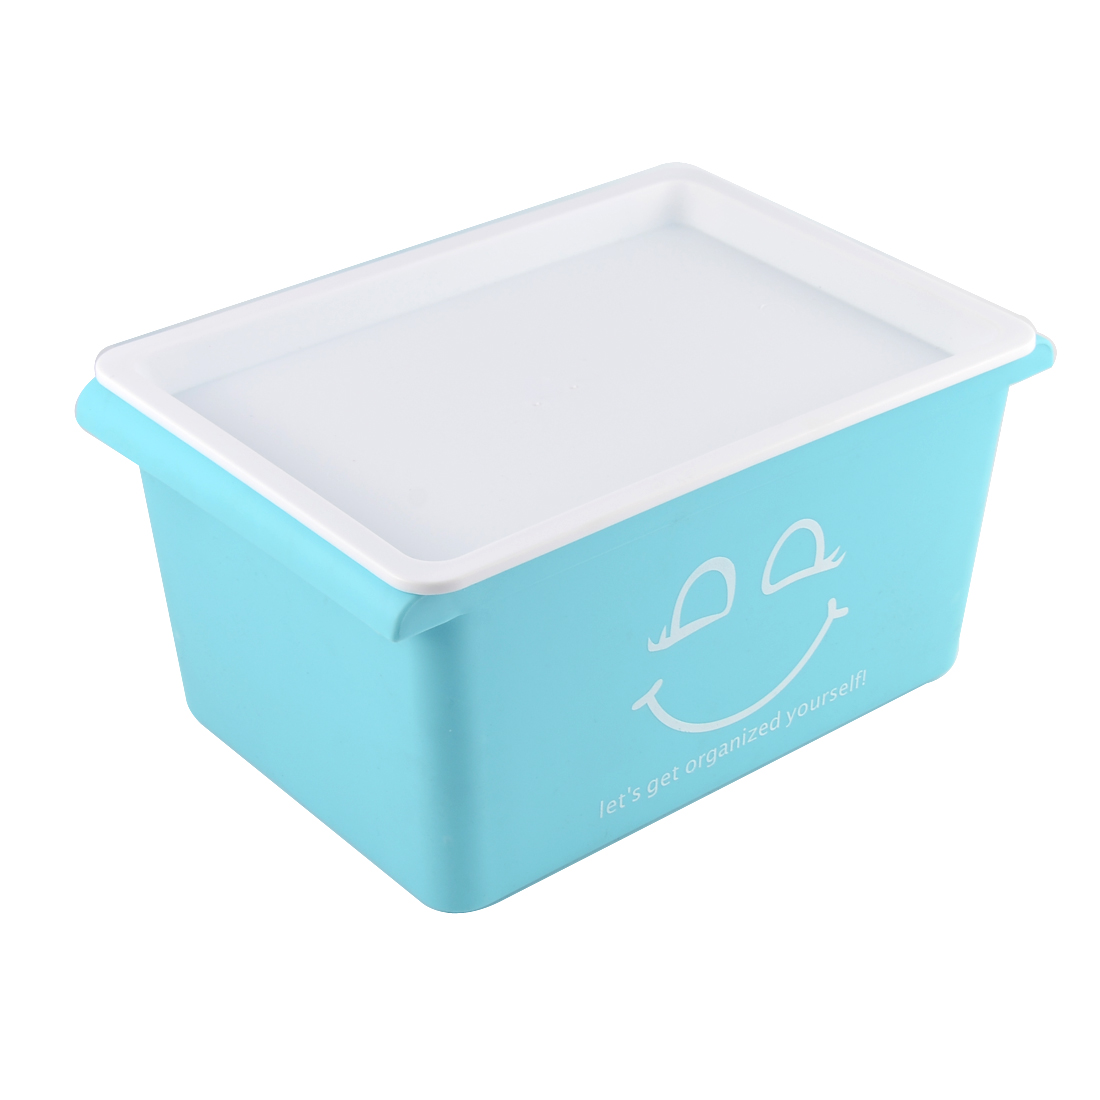 Storing clothes in plastic containers